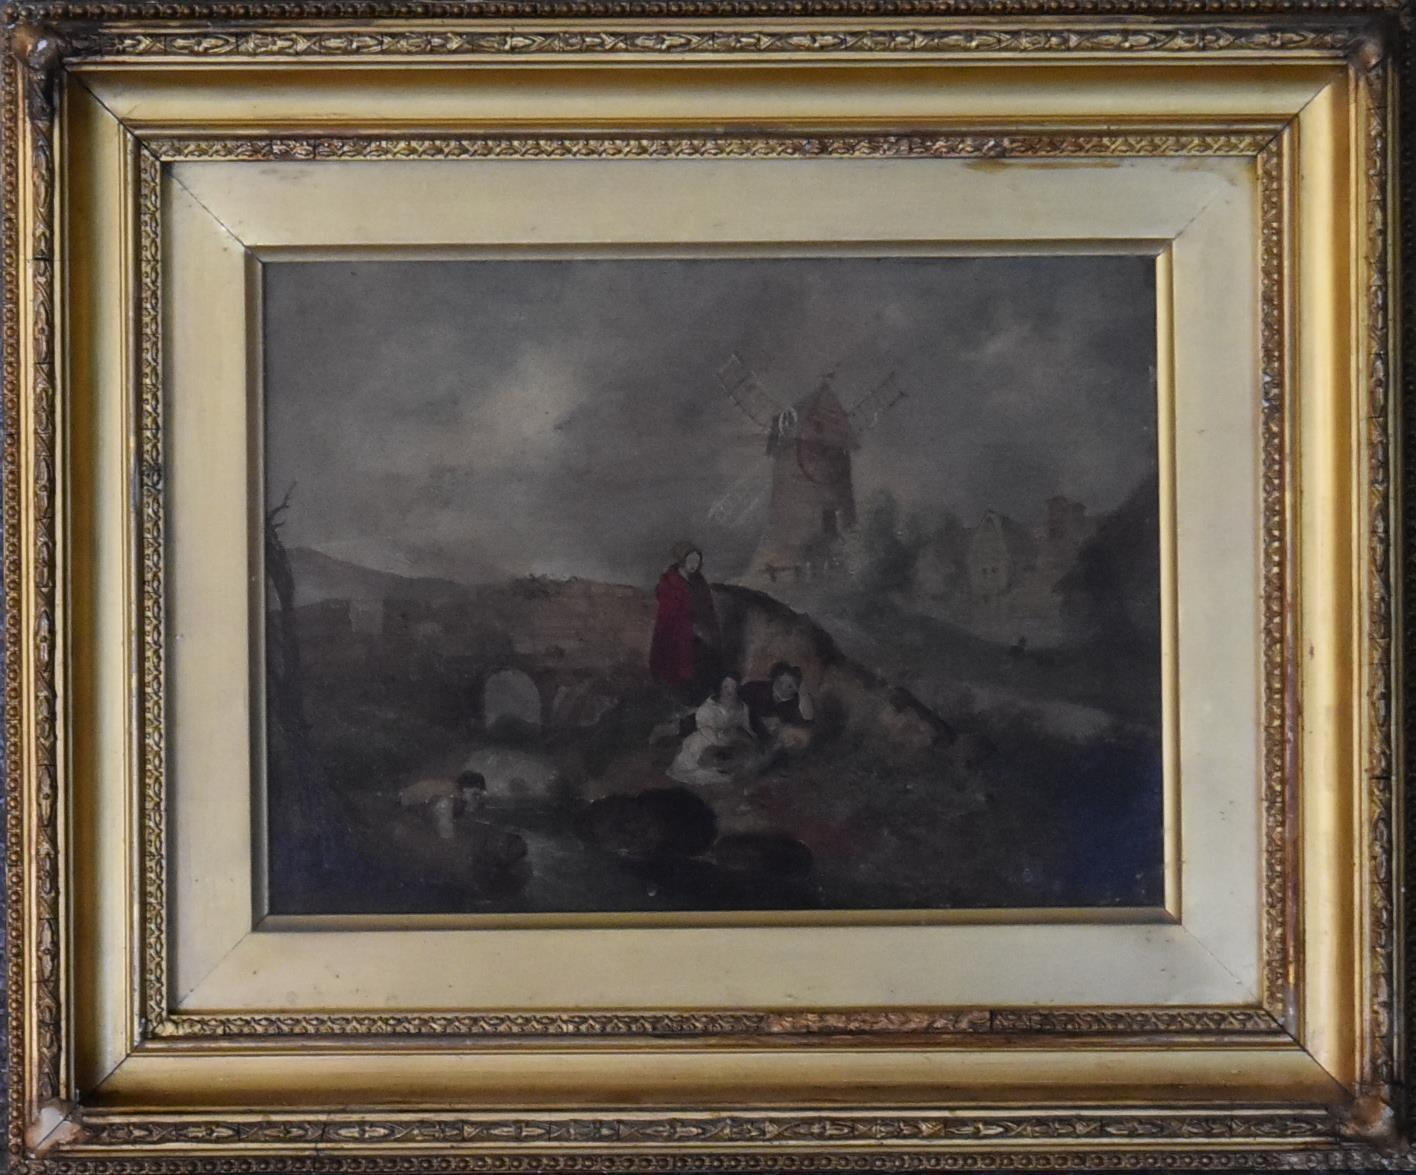 A gilt framed and glazed oil on board, windmill and village, figures in the foreground by a - Image 2 of 3